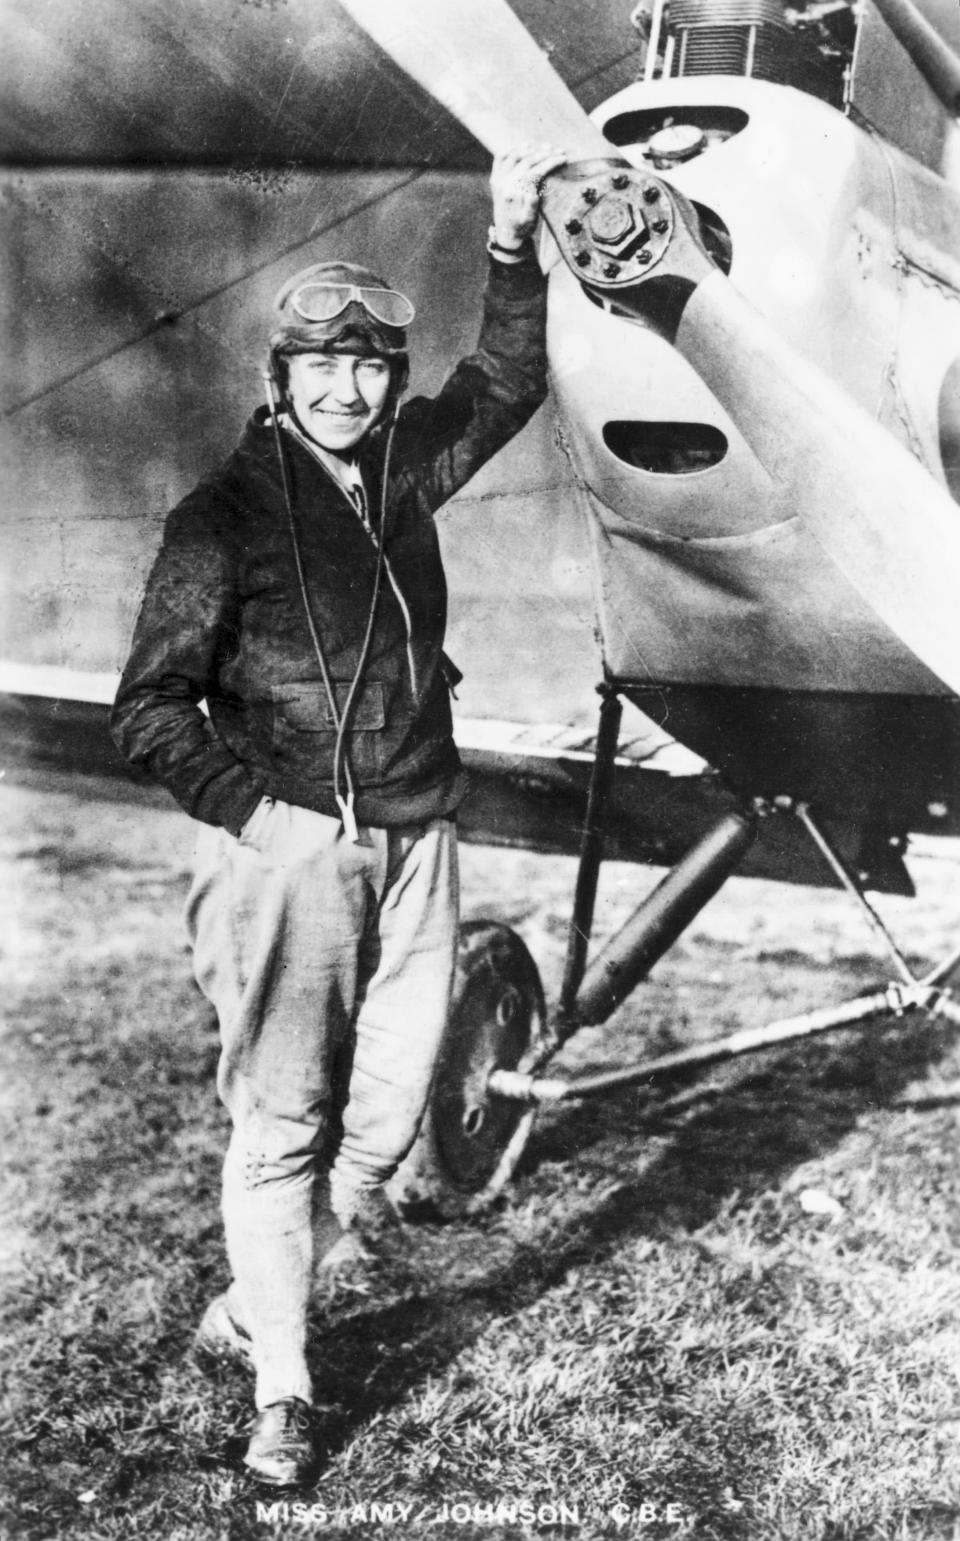 English aviatorJohnson in her flying suit, standing in front of her DH60 Moth aeroplane 'Jason'. In 1930 Johnson (1903-1941) became the first woman to fly solo from England to Australia, winning £10,000 from the 'Daily Mail' newspaper. In 1932, she set a record for the fastest solo flight from England to Cape Town and broke that record four years later. In 1933, with her husband, James Mollison (1905-1959) she flew in a De Havilland biplane non-stop across the Atlantic in 39 hours. She joined the Air Transport Auxilary as a pilot in WWII and died when her plane was lost over the Thames estuary. (Photo: Science & Society Picture Library/SSPL/Getty Images)